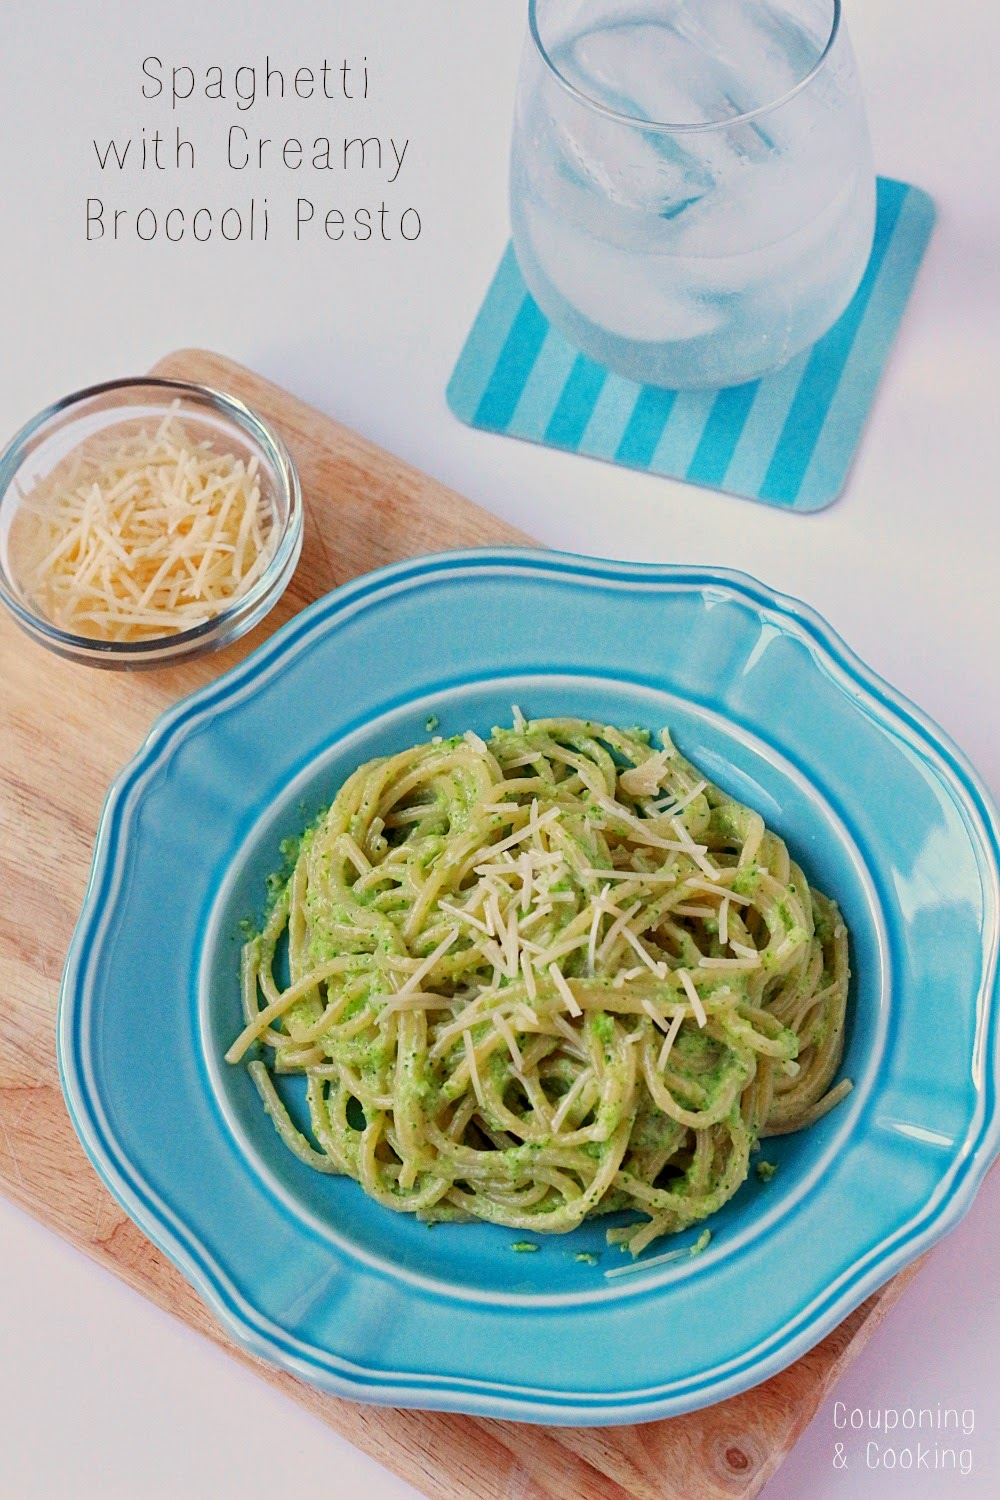 Spaghetti With Creamy Broccoli Pesto | Couponing & Cooking